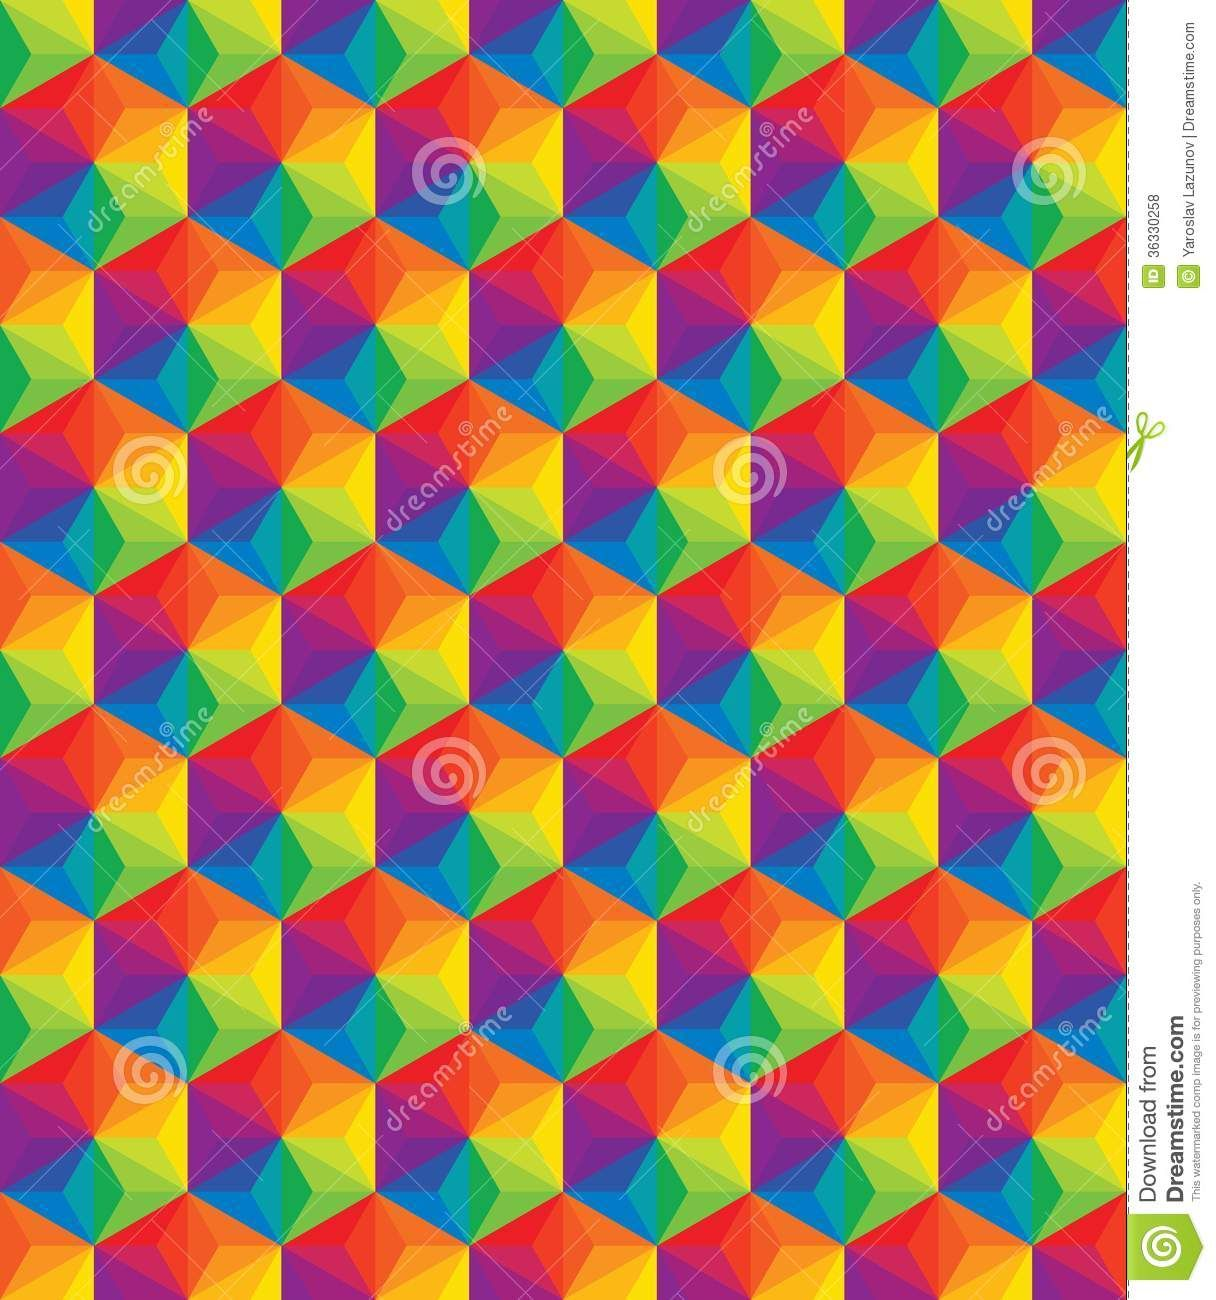 vector colorful pattern of geometric shapes royalty free stock